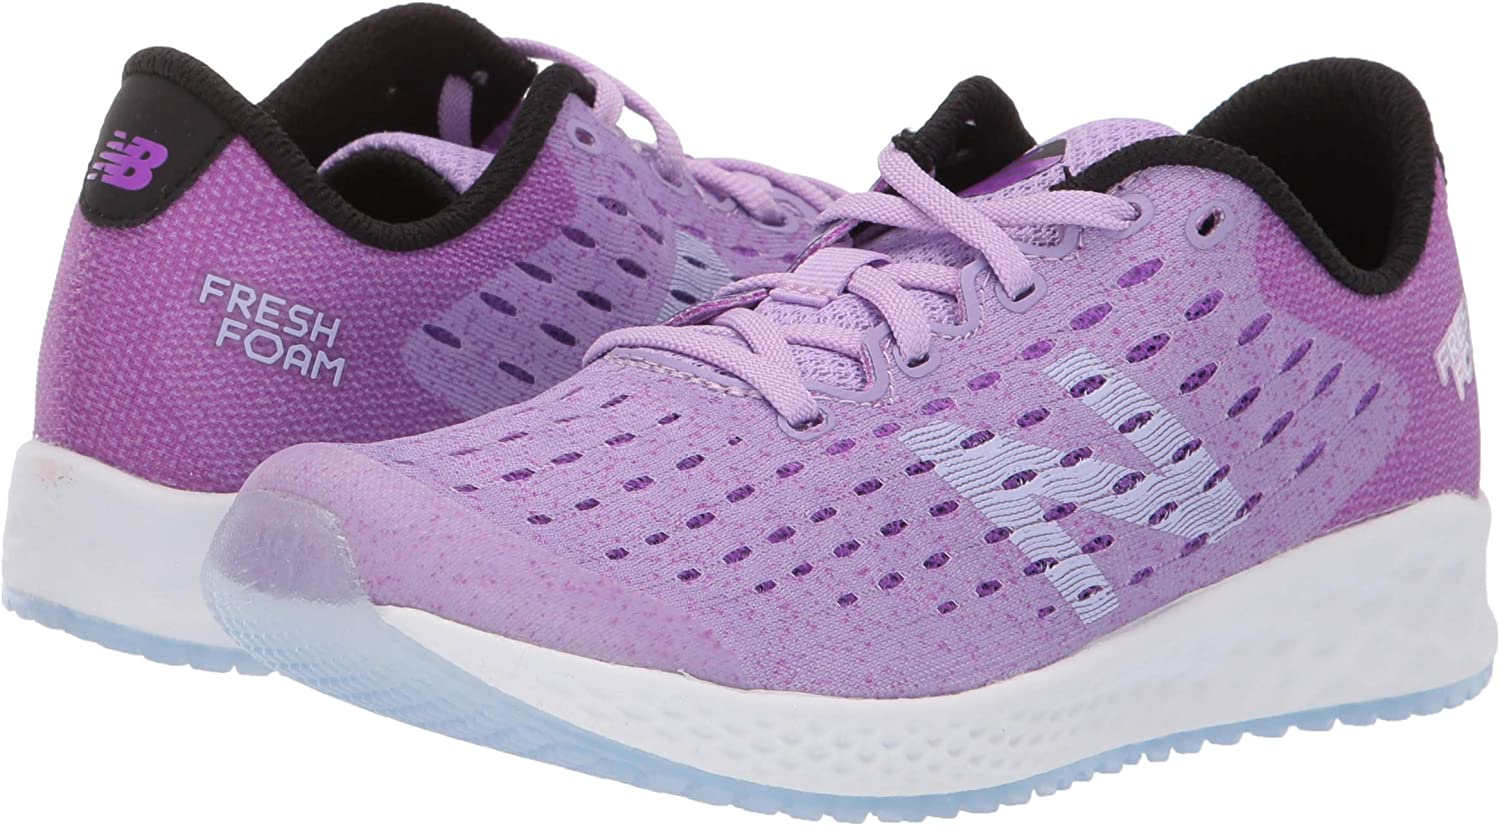 New Balance Fresh Foam Zante Pursuit Violeta NIÑA GPZNPVV: Amazon.es: Deportes y aire libre